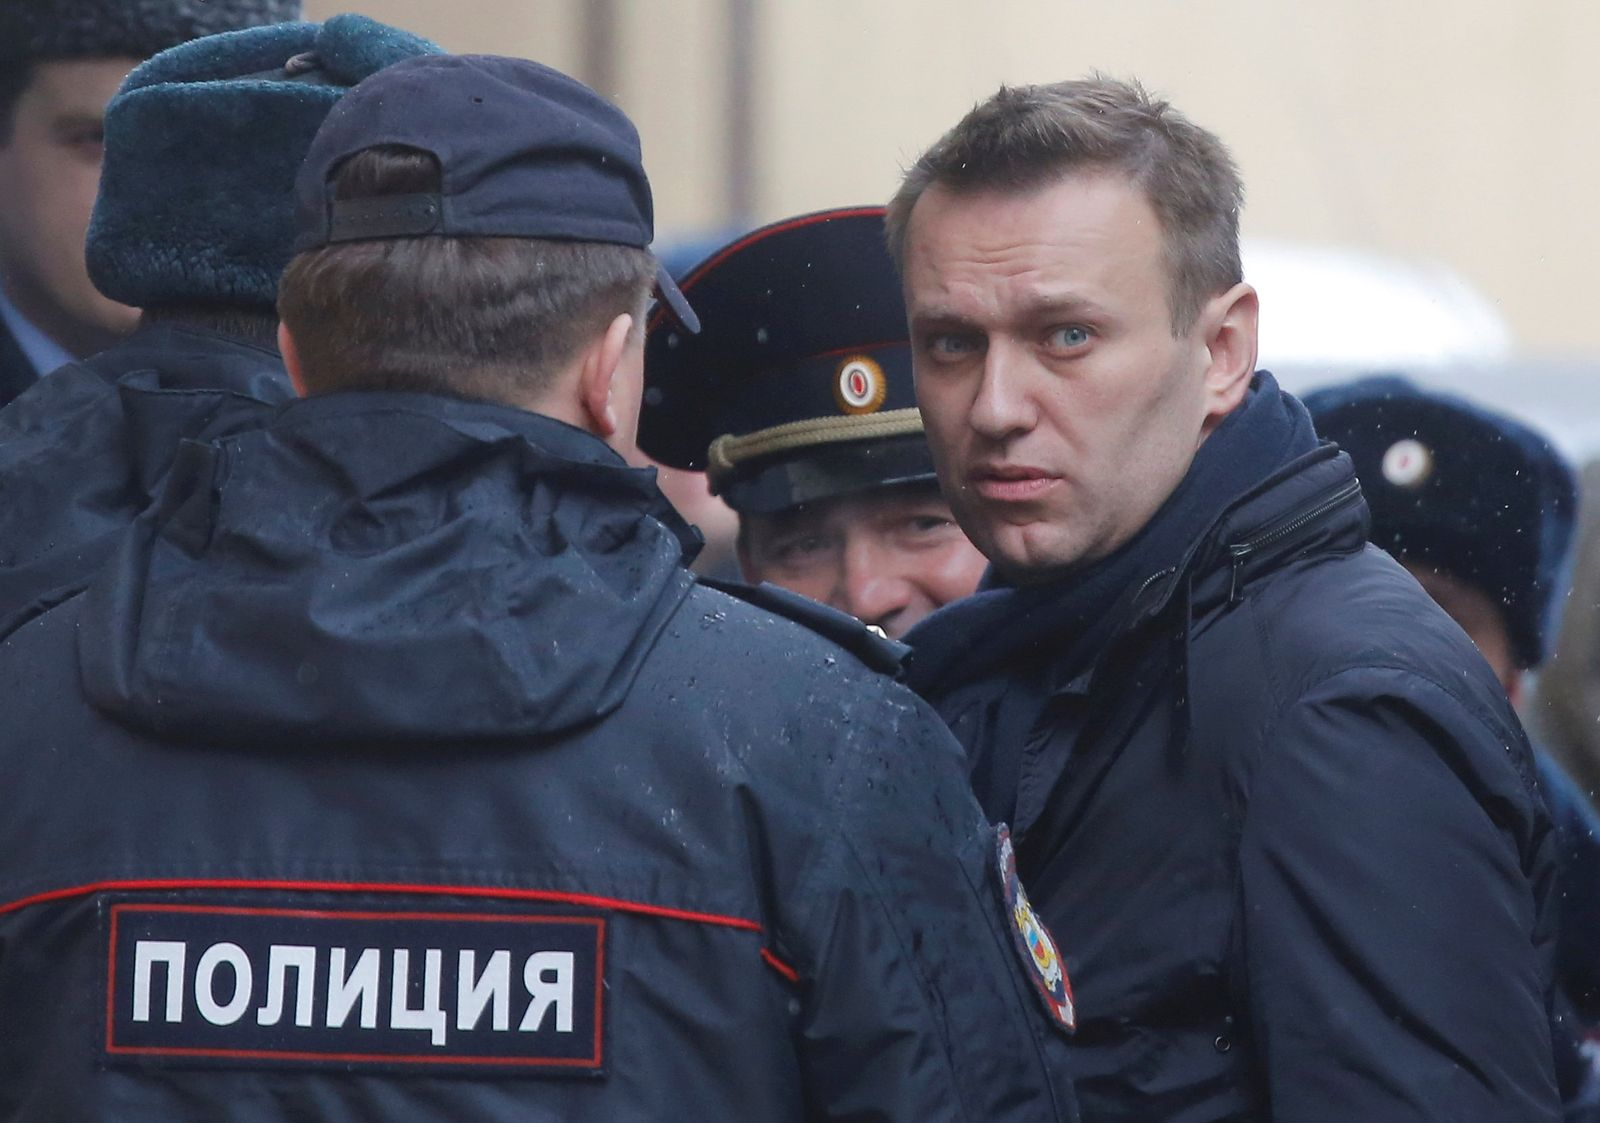 Russian opposition leader Navalny is escorted upon his arrival for hearing after being detained at protest against corruption and demanding resignation of PM Medvedev, at Tverskoi court in Moscow